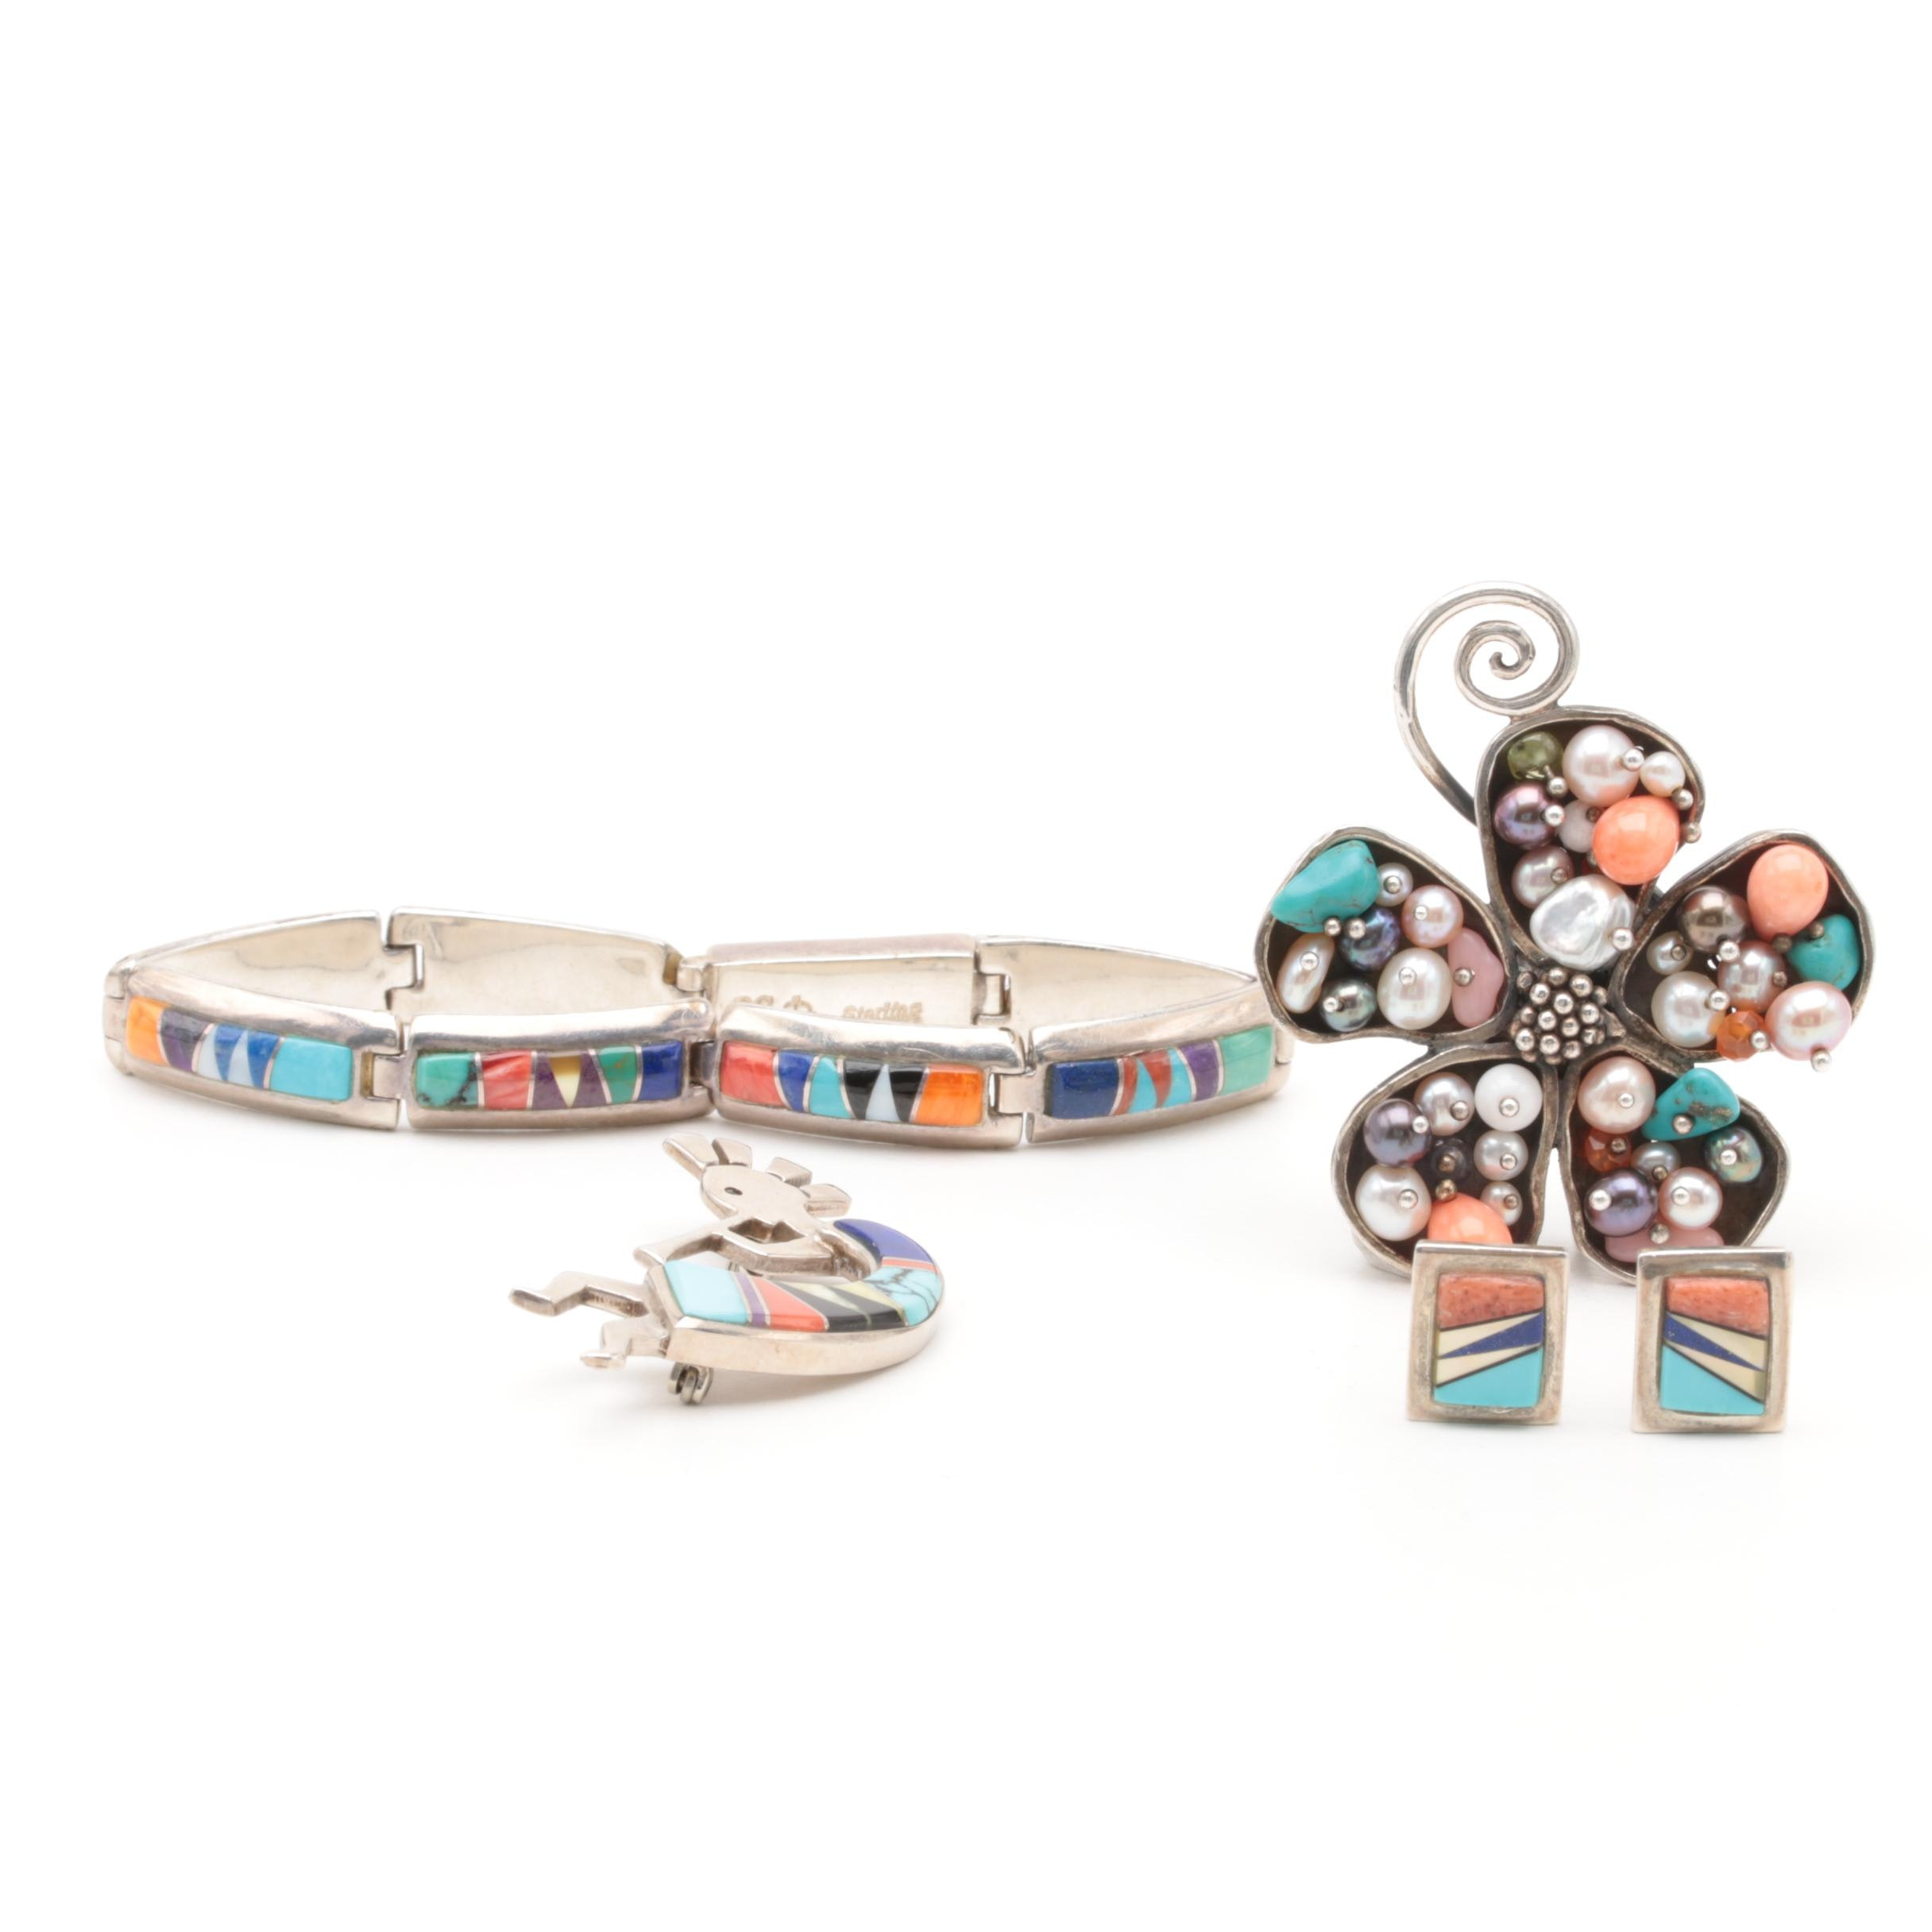 Southwestern Style Sterling Silver Jewelry Including B G Mudd and Turquoise